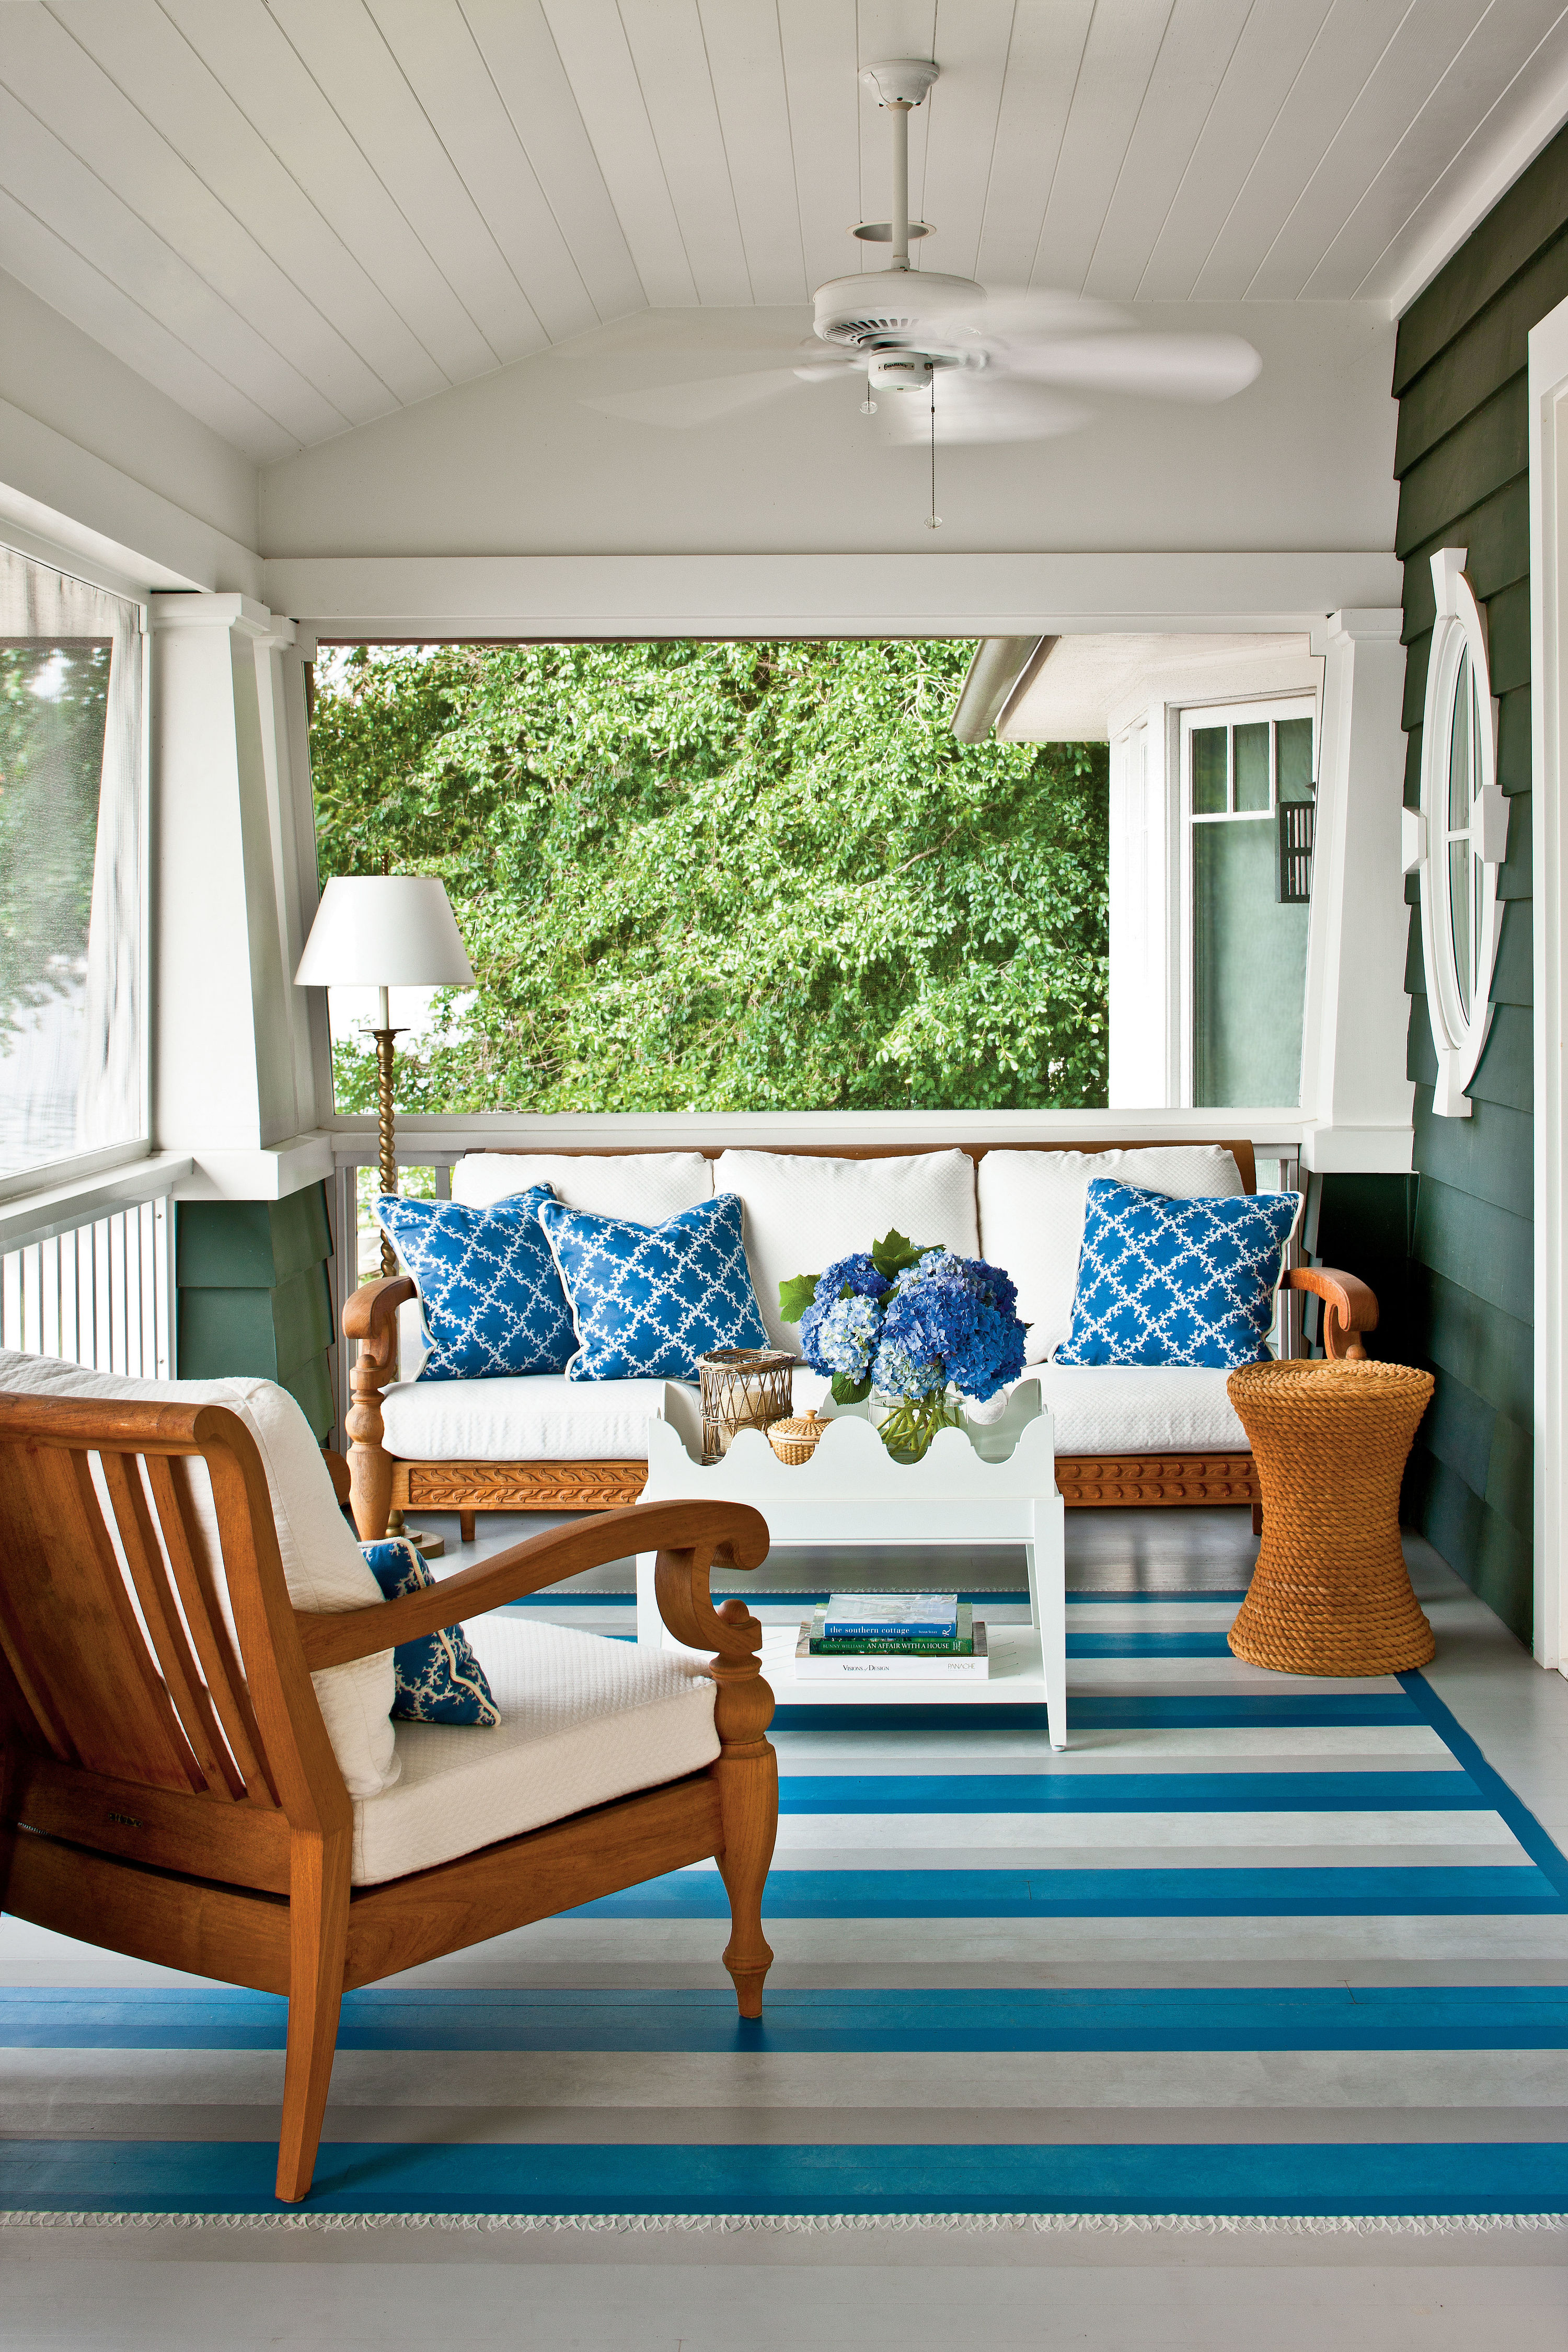 Outdoor Decorating Trends That Will Be In for the Summer of '17